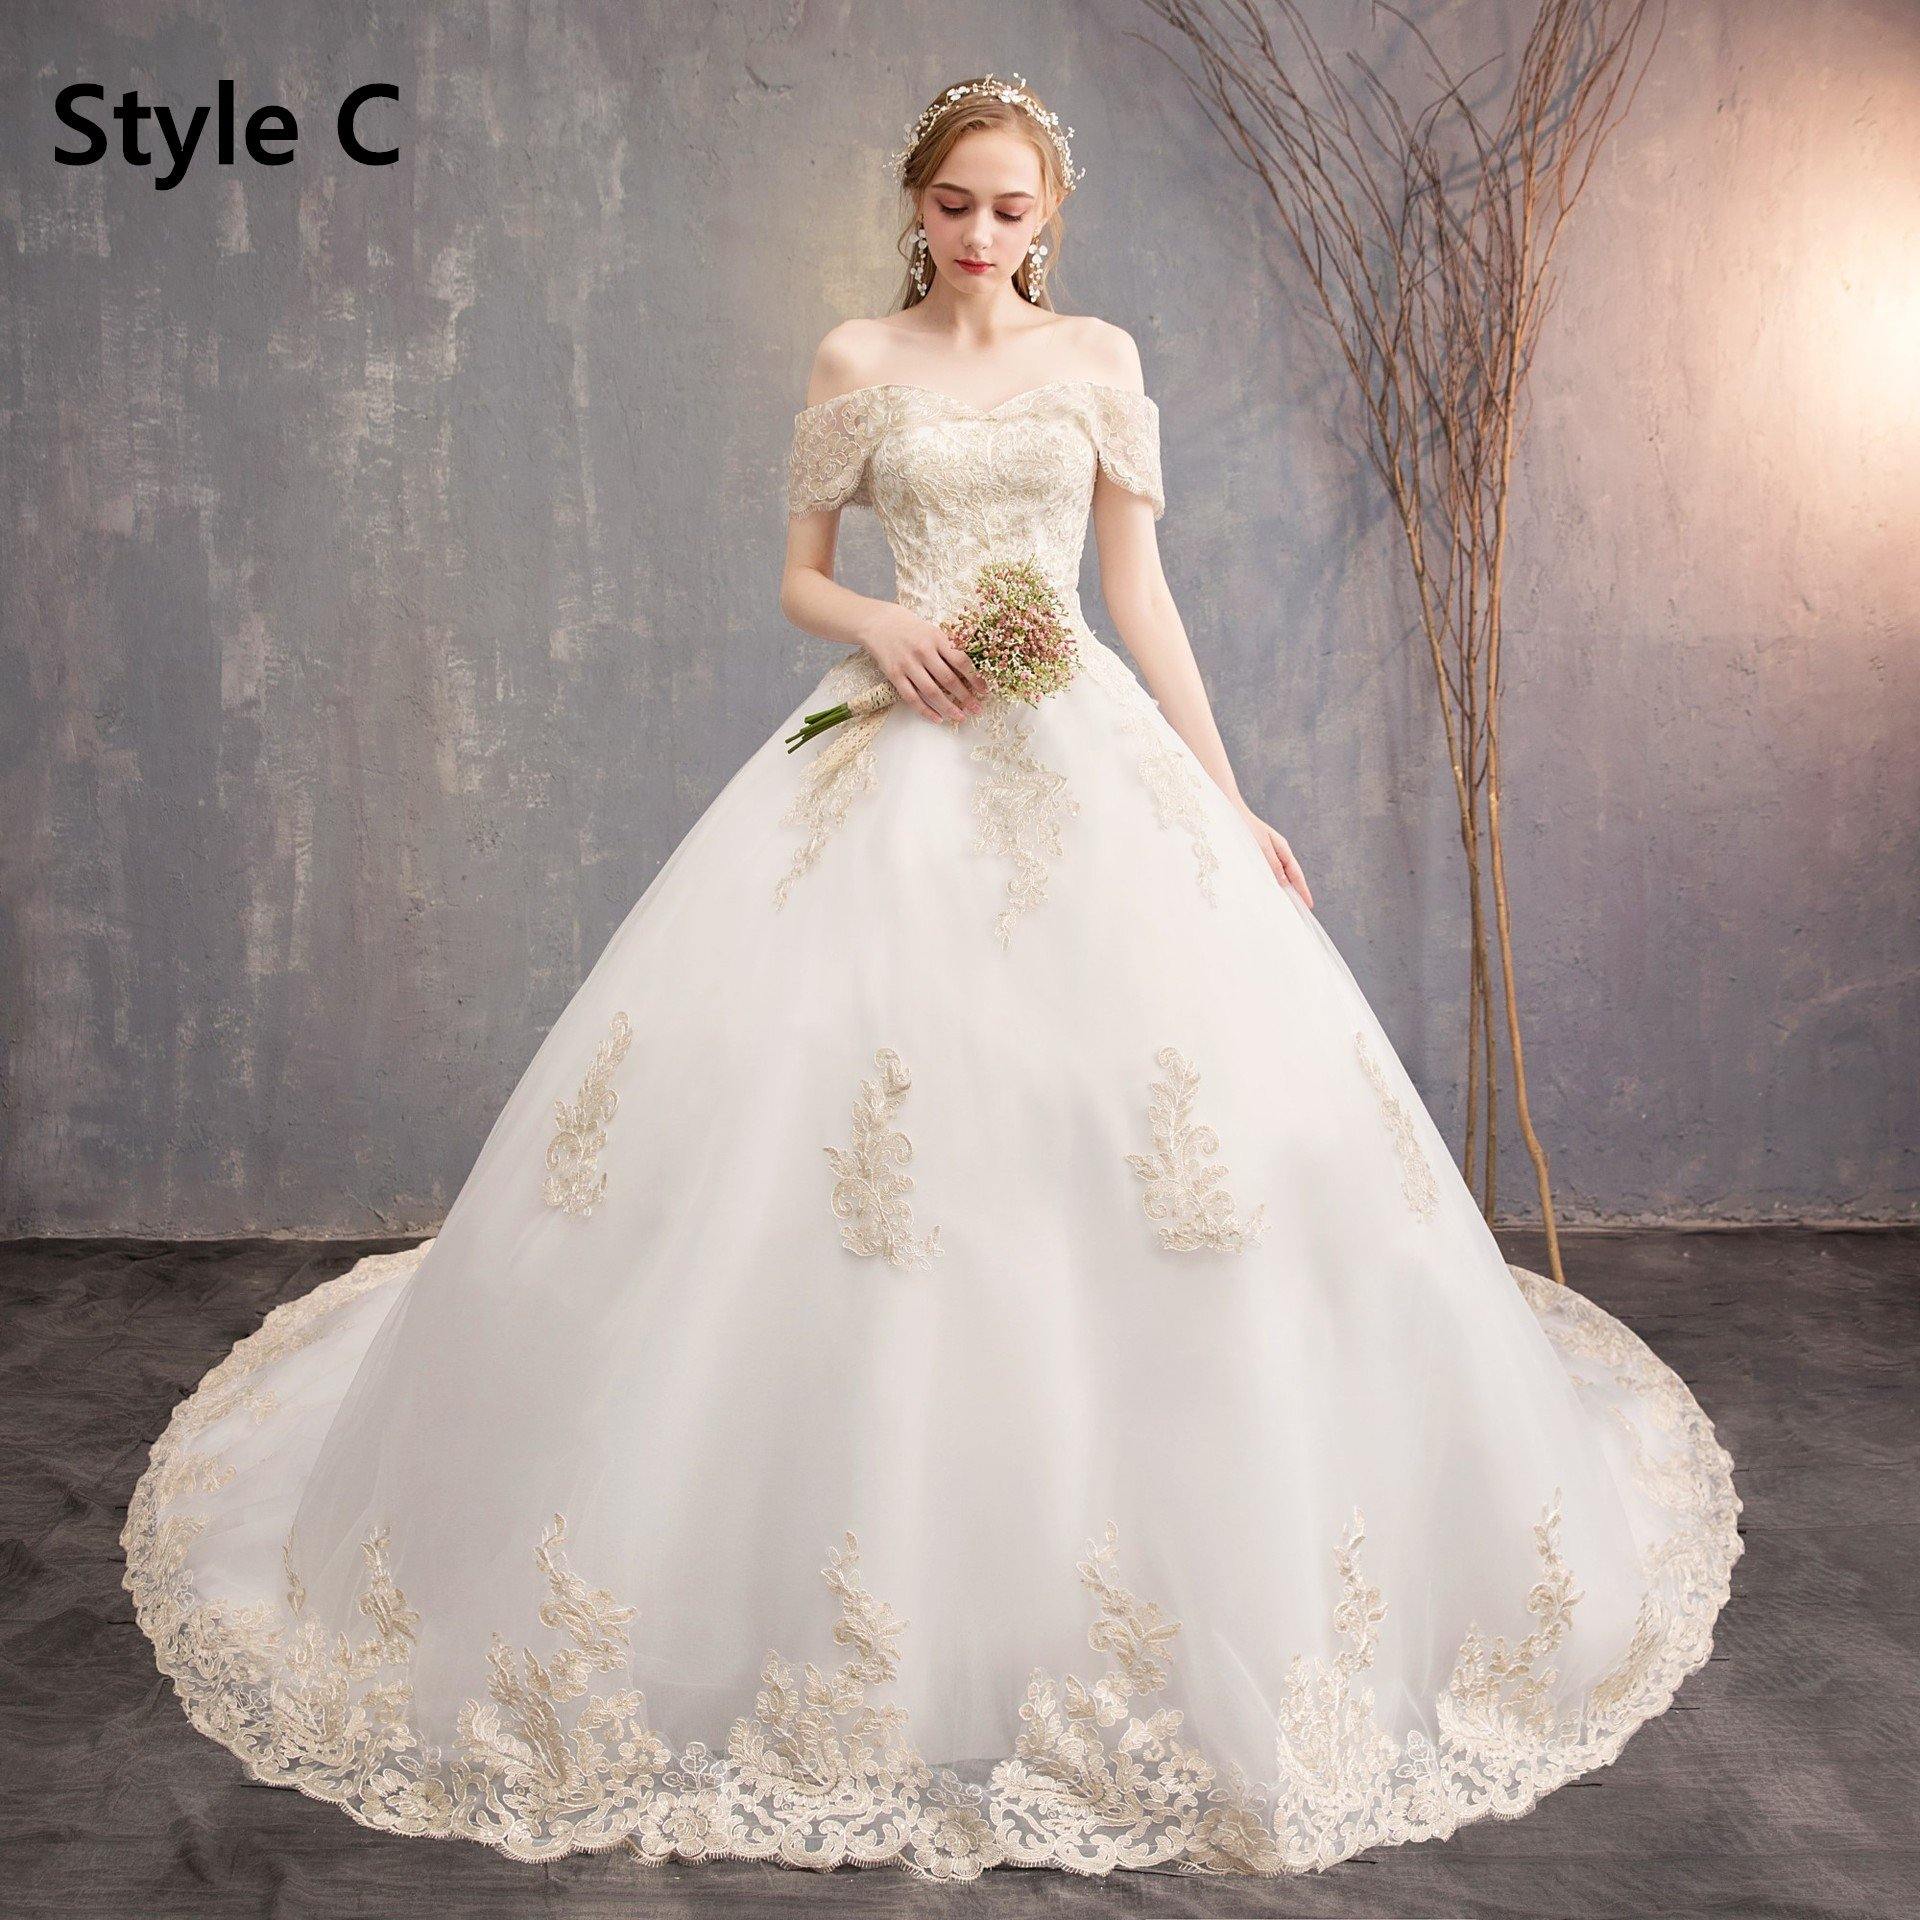 Lace Wedding Dresses 2020 New 715 White Floral Maxi Evening Dresses Vintage A Line Wedding Dresses Abaya Designs Red Dress For Wedding Dusty Blue Wedding Dress